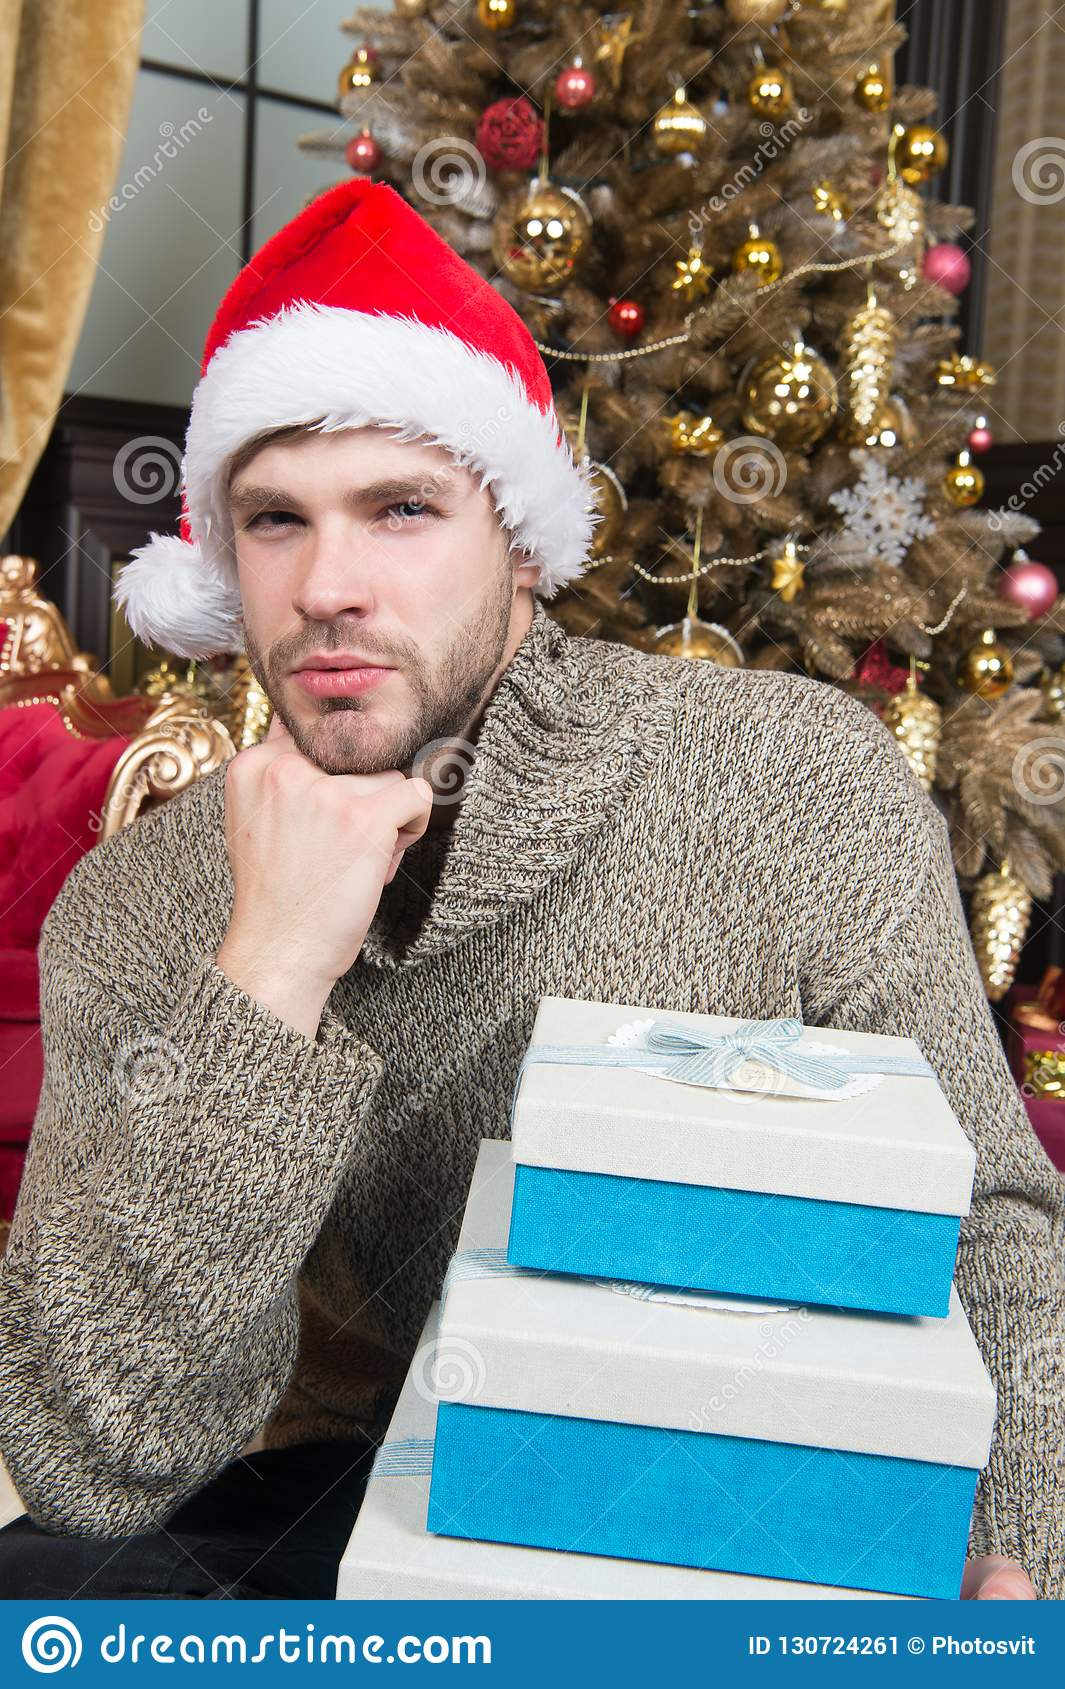 Christmas Thoughts.Lost In Christmas Thoughts Happy Man With Xmas Gift Boxes